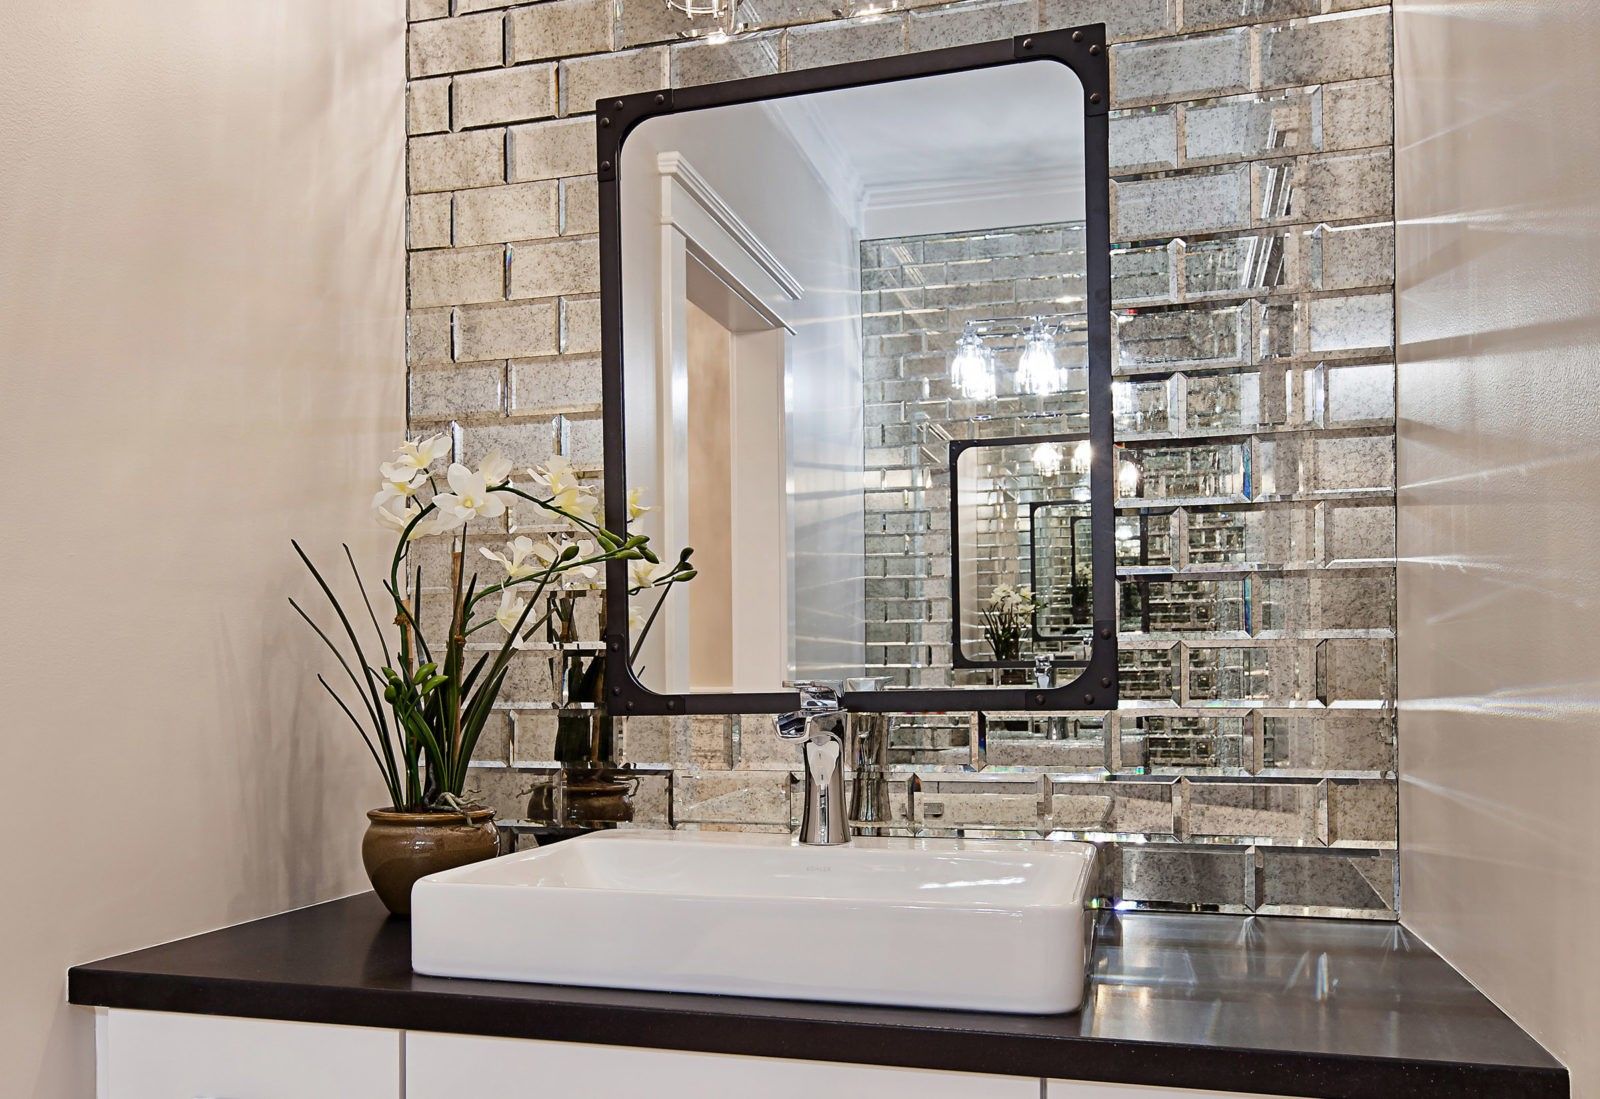 powder-room-redesign-revision-design-small-bath-vanity-idea